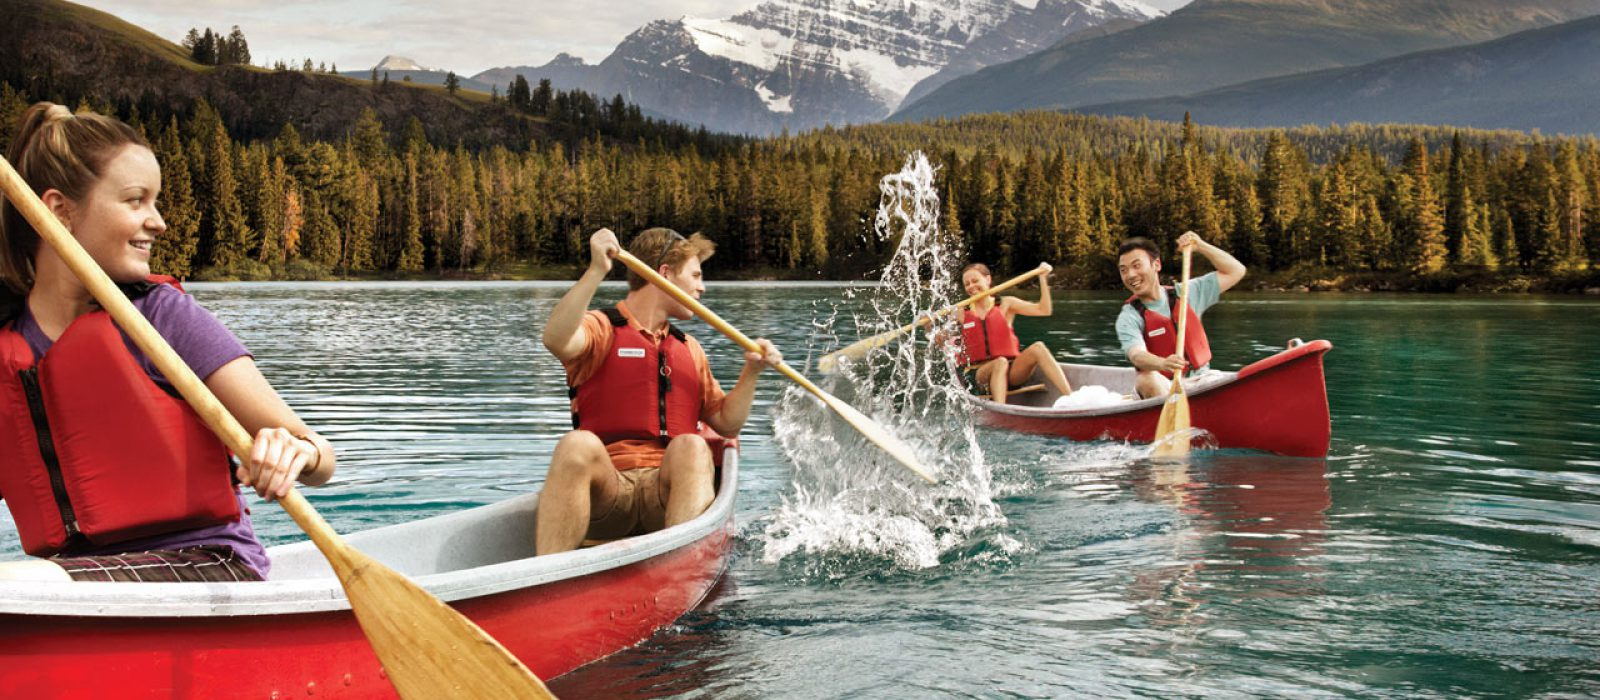 People canoeing and splashing in Lac Beauvert in Jasper National Park